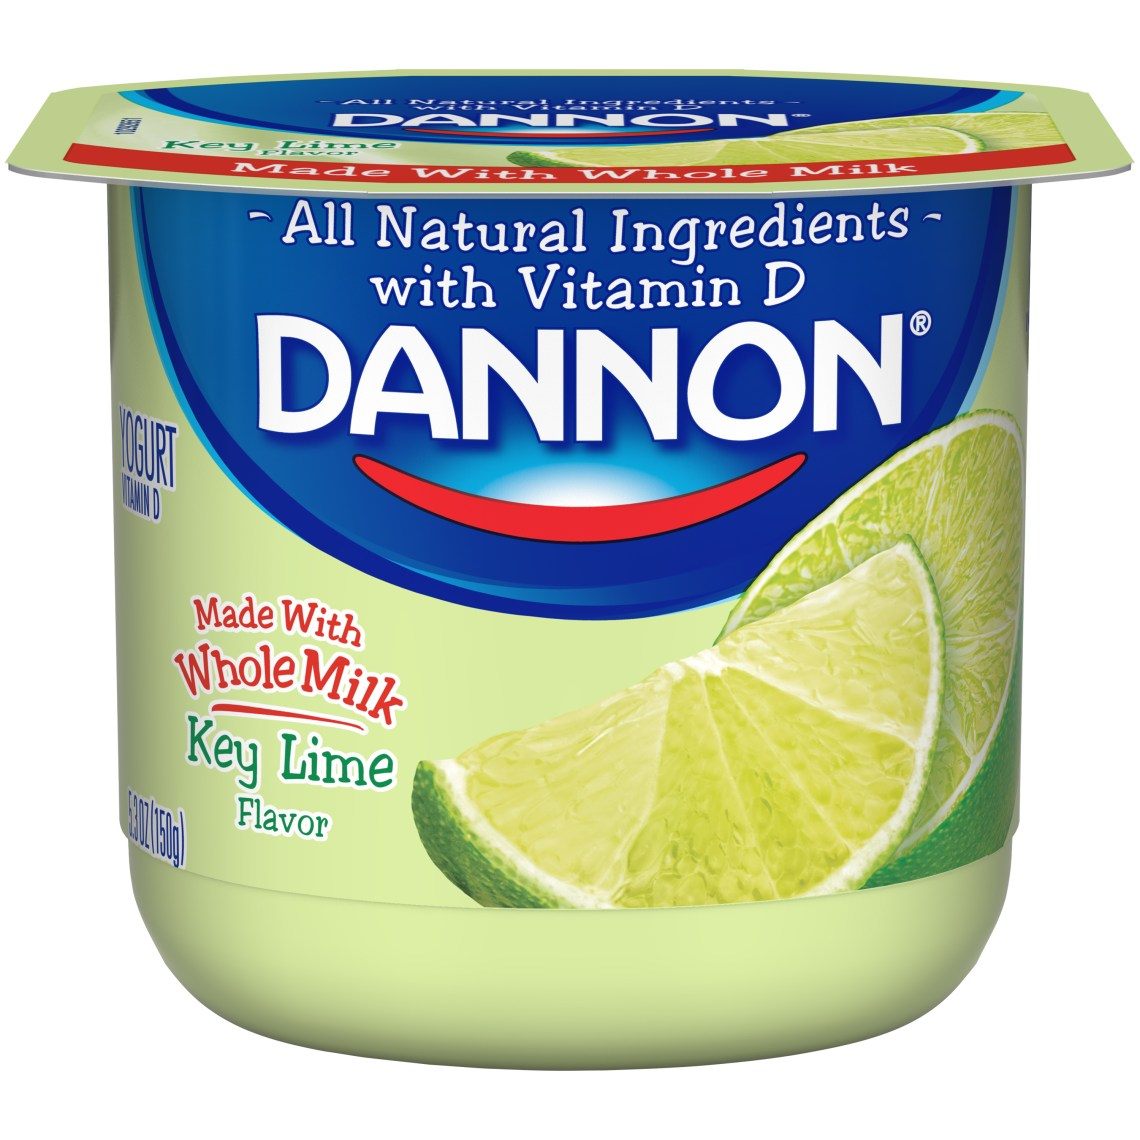 Dannon Whole Milk - Key Lime-1